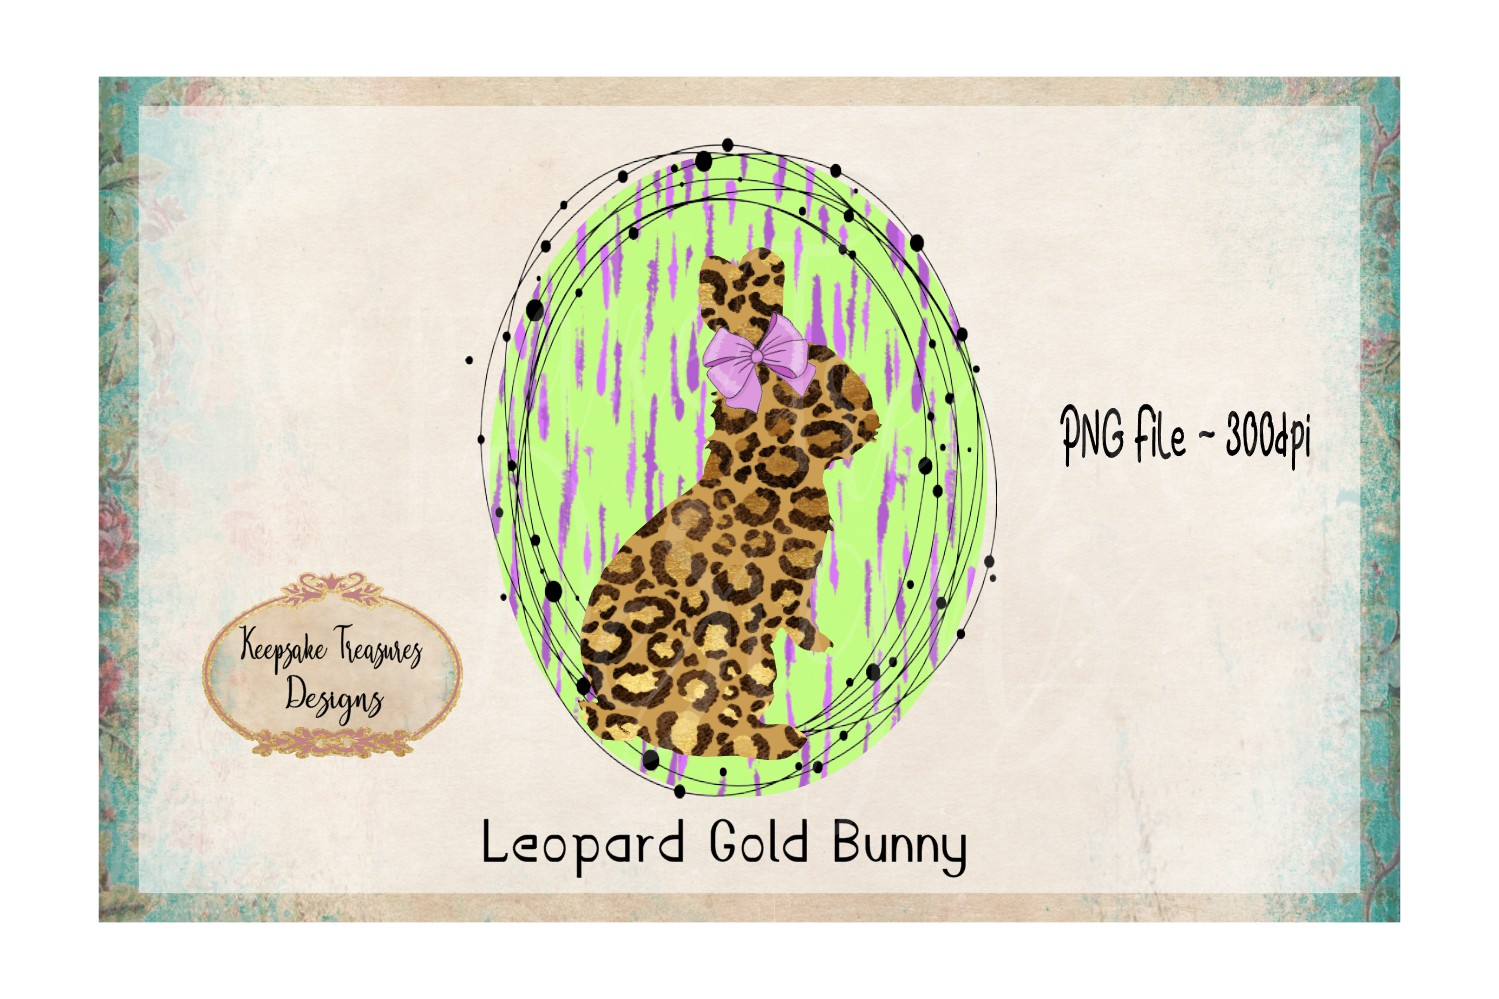 Leopard Gold Bunny Hand Drawn Frame example image 1